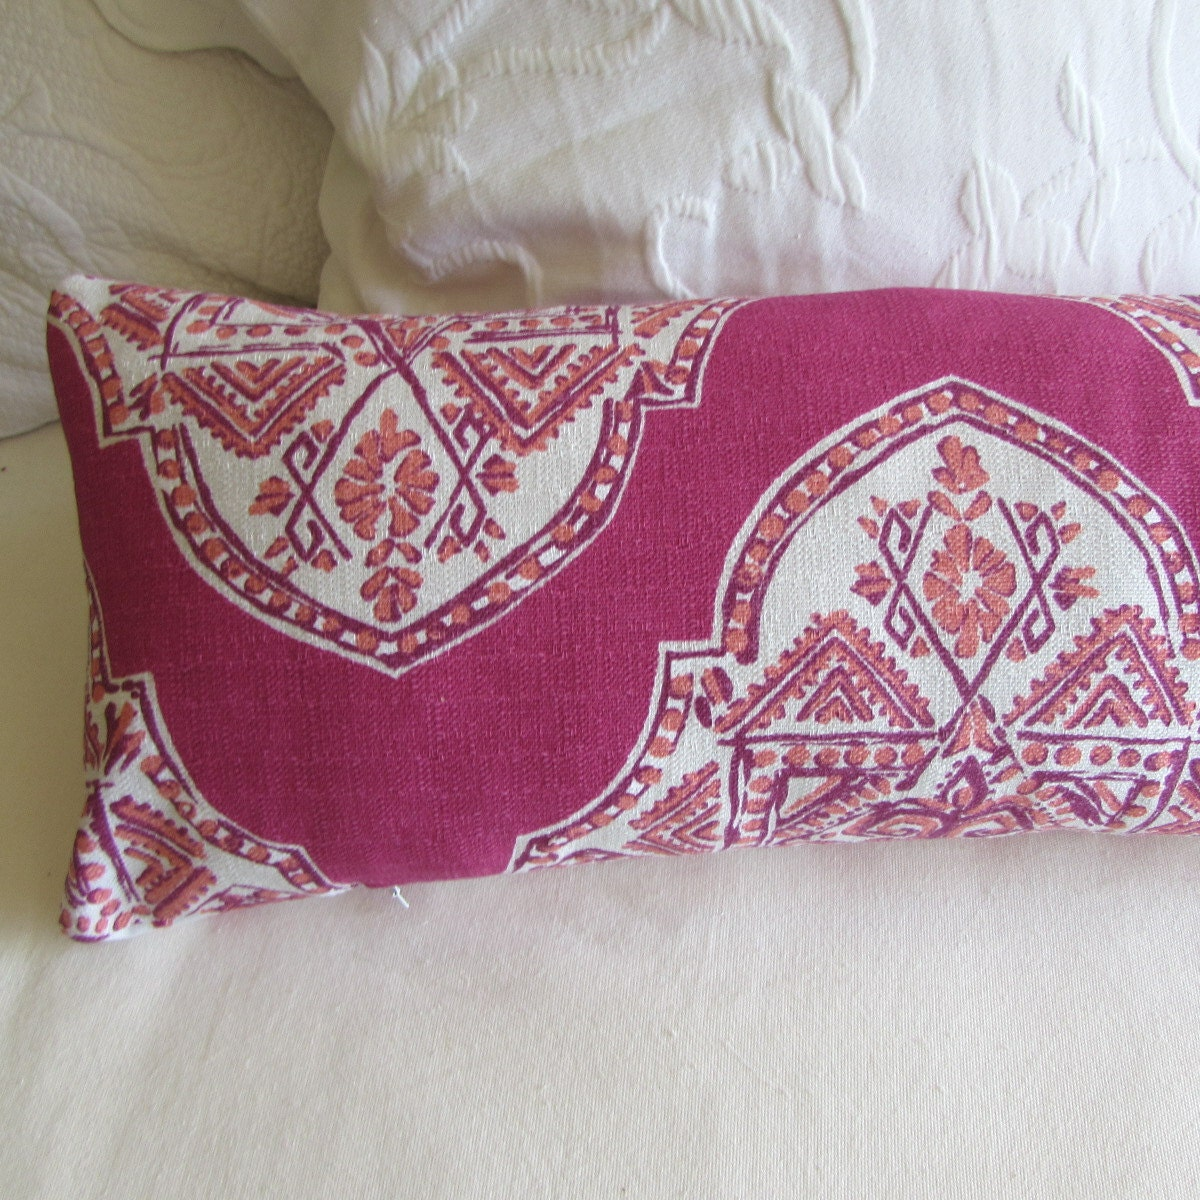 Extra Long Decorative Pillows : decorative bolster pillow 10x54 extra long in malta mulberry